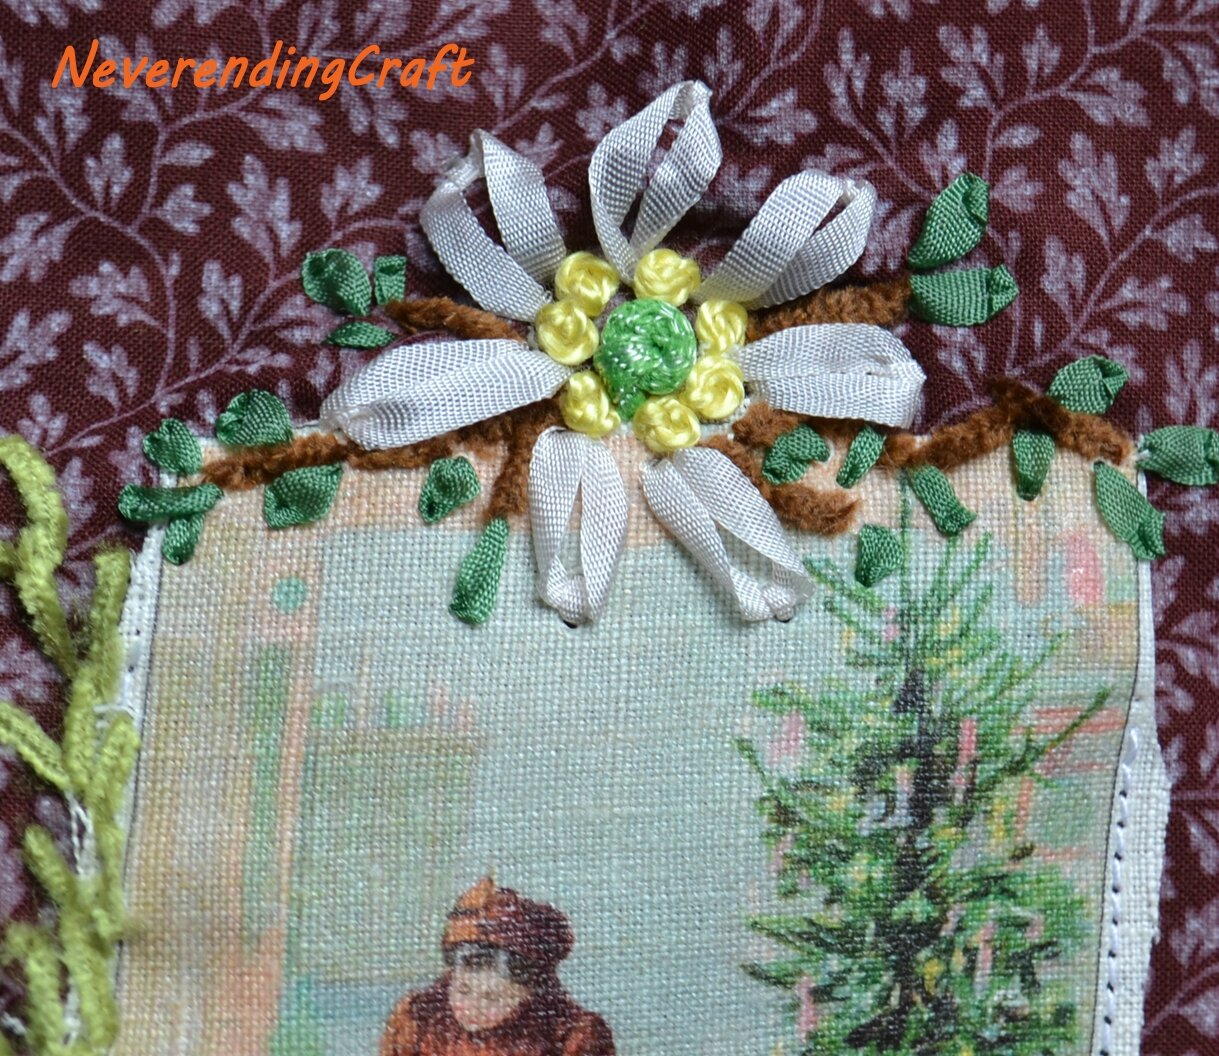 Broderie_Noel_Neverendingcraft4